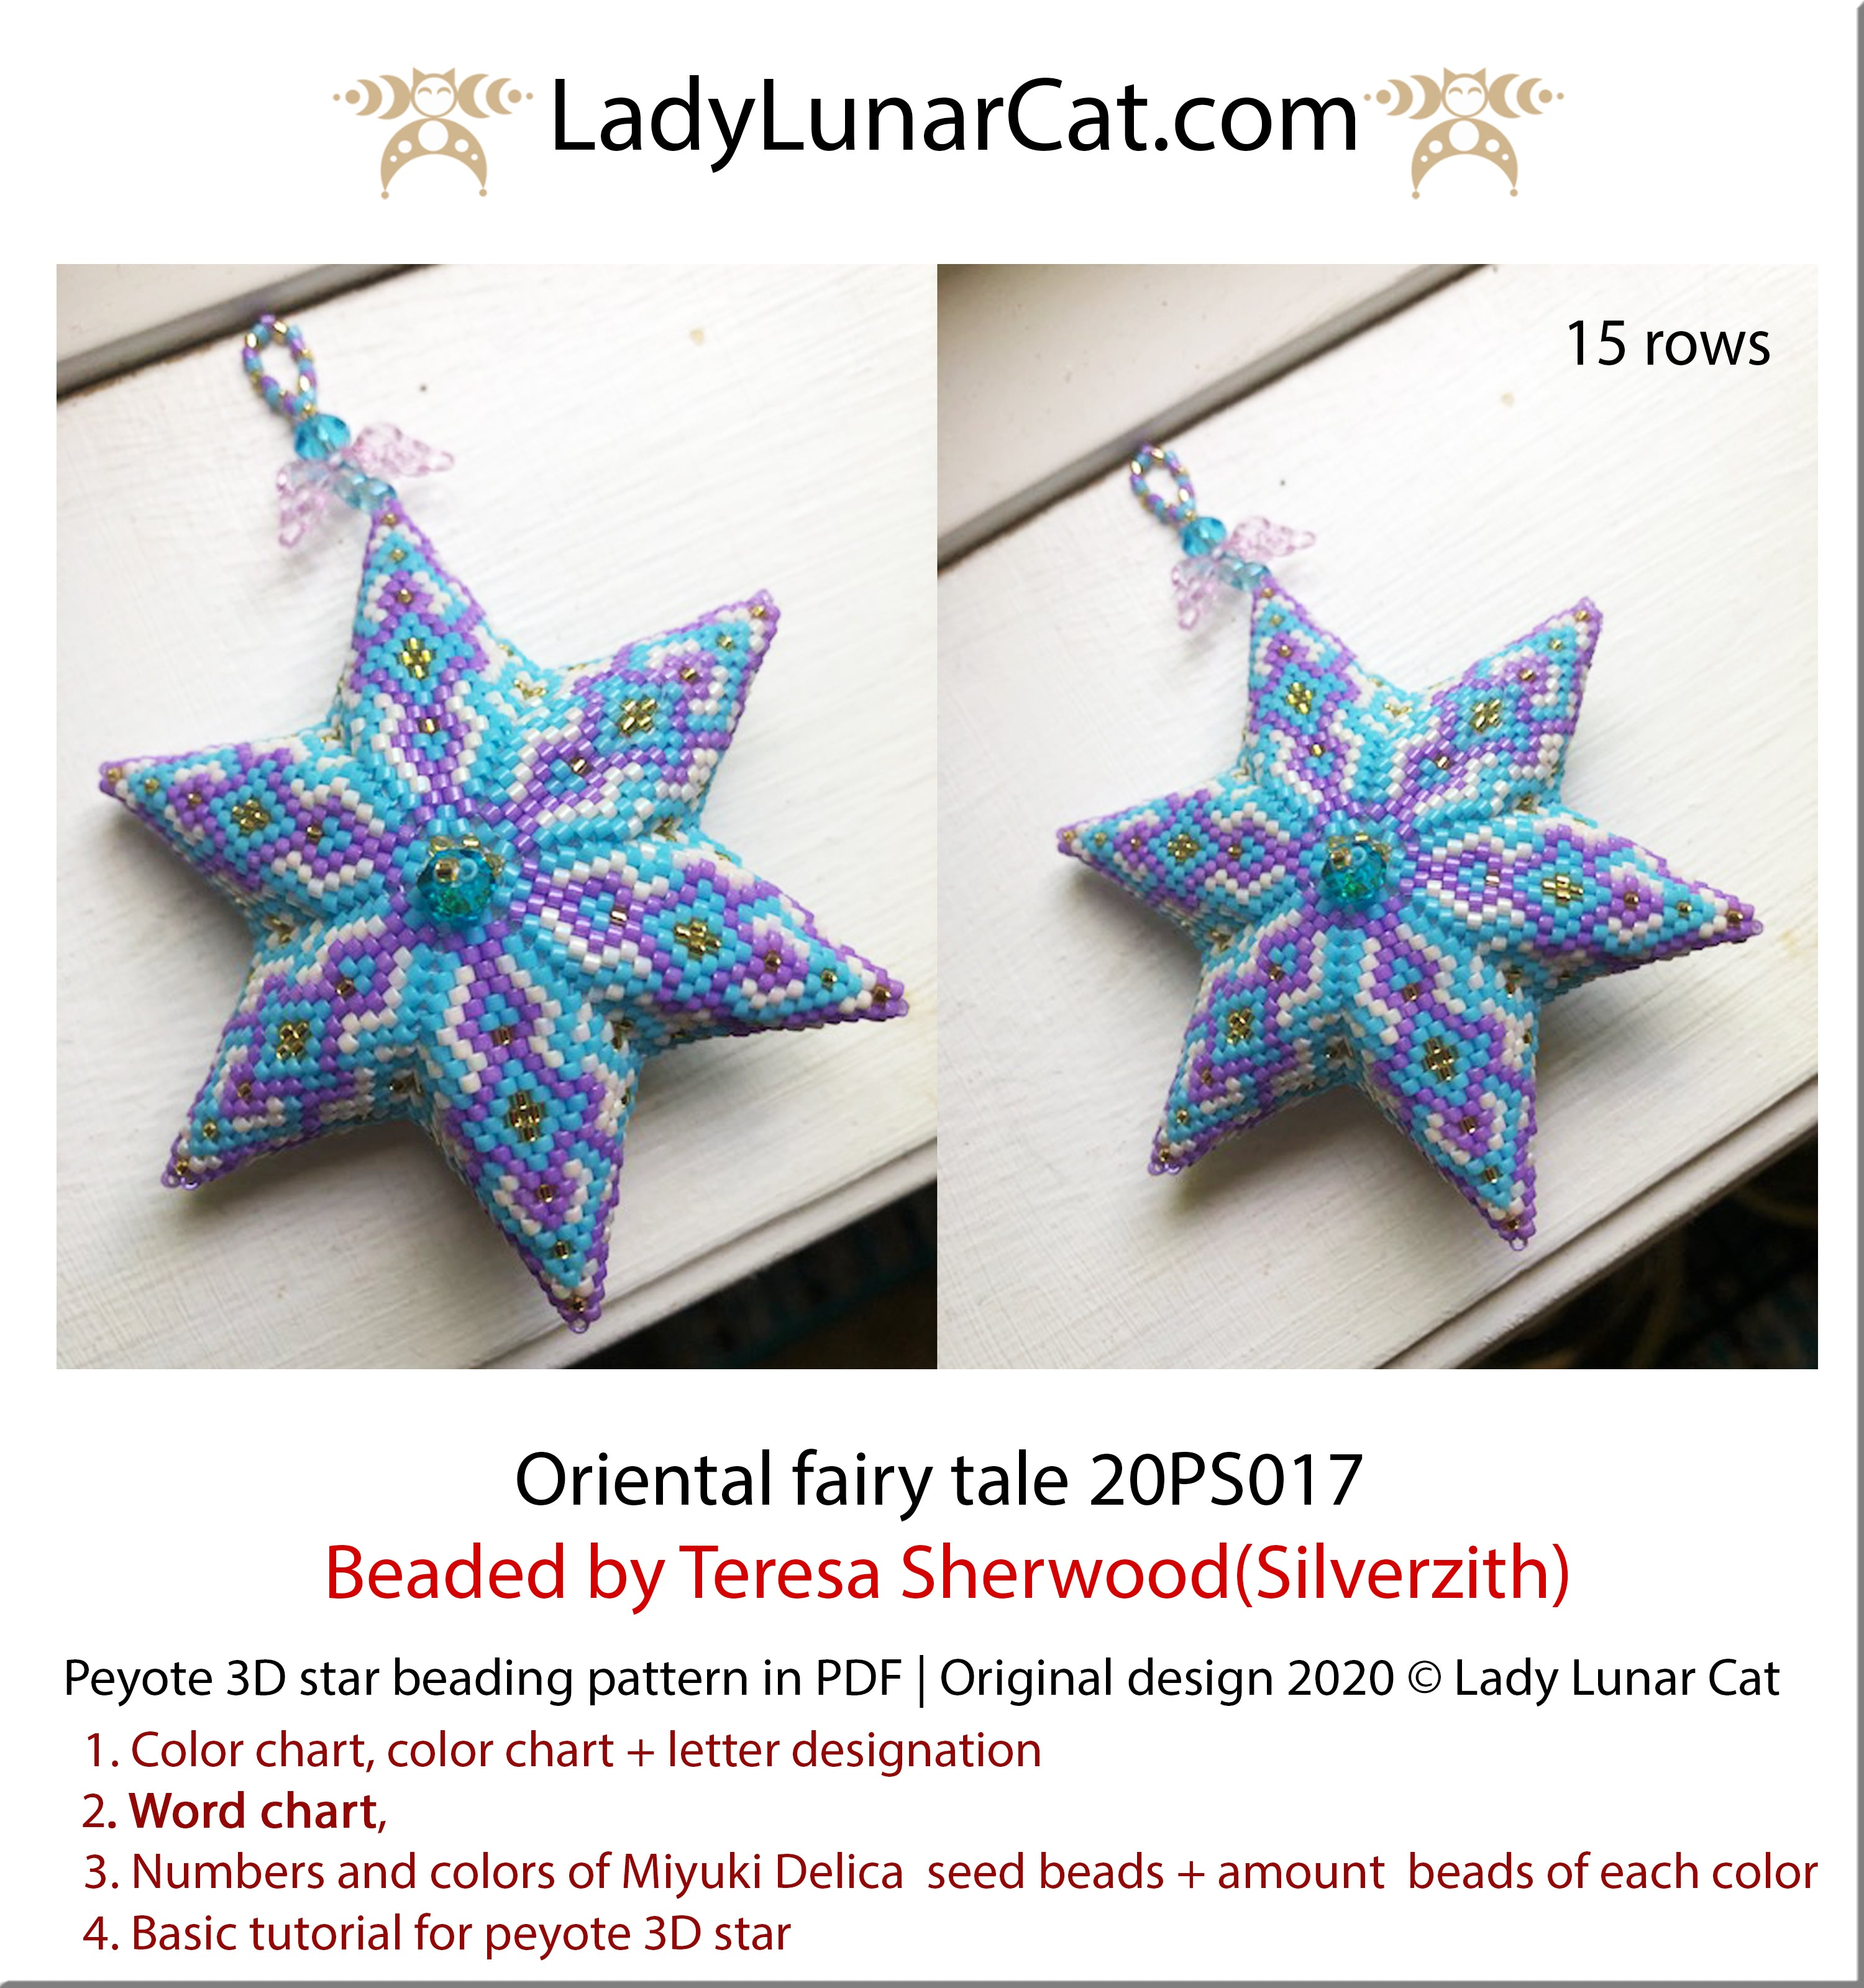 3d peyote star patterns for beading Oriental fairy tale by Lady Lunar Cat | Seed beads tutorial for 3D beaded star